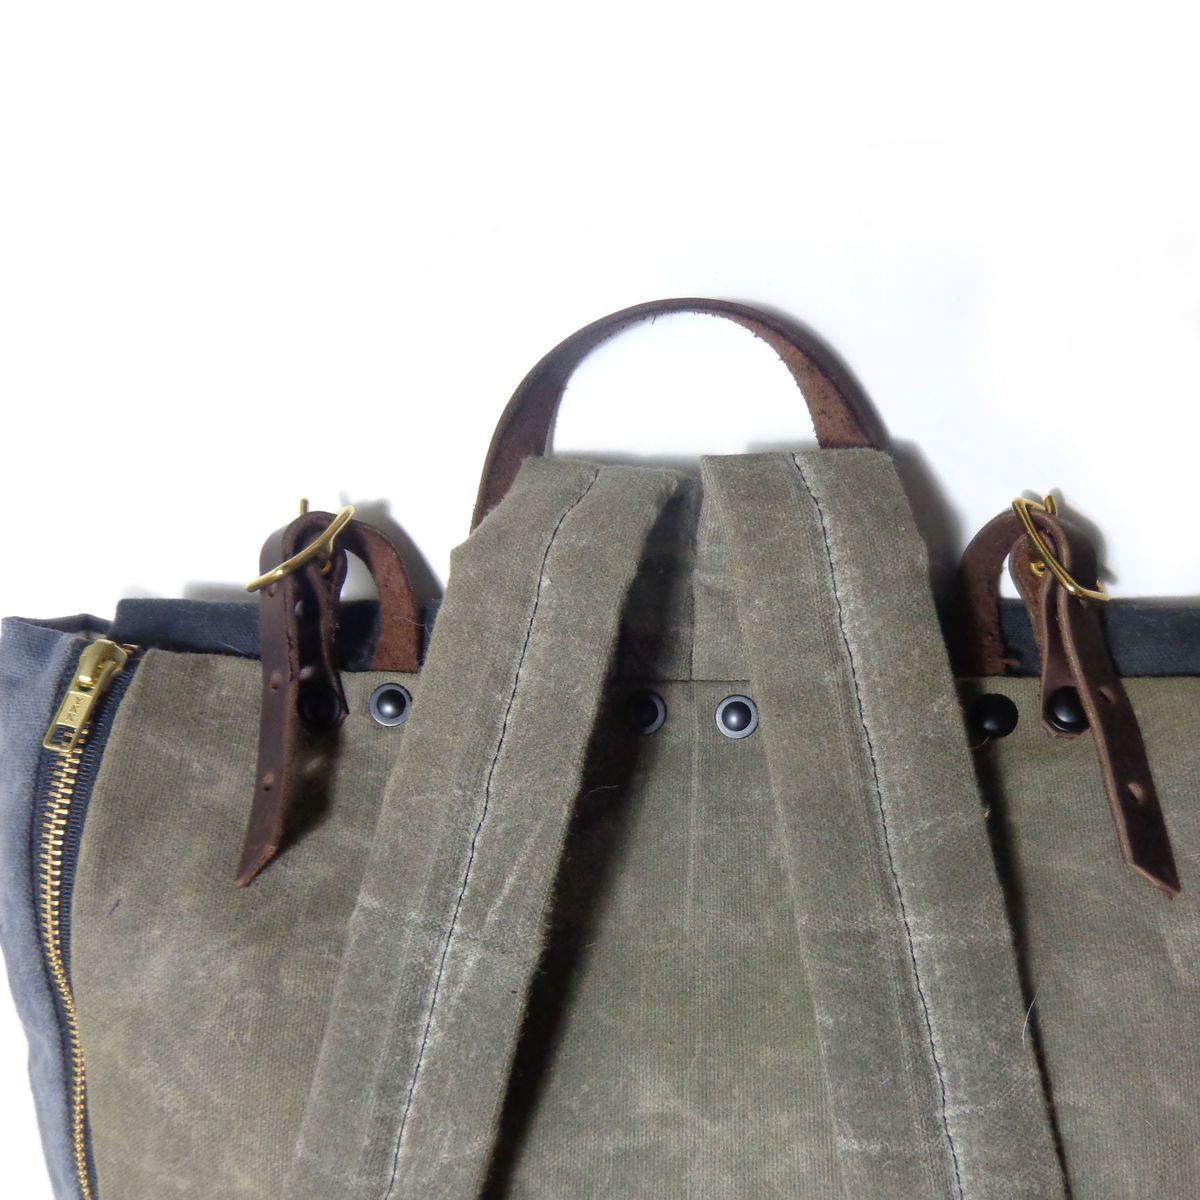 Convertible Laptop Backpack, Tote Strap - Safari - product images  of